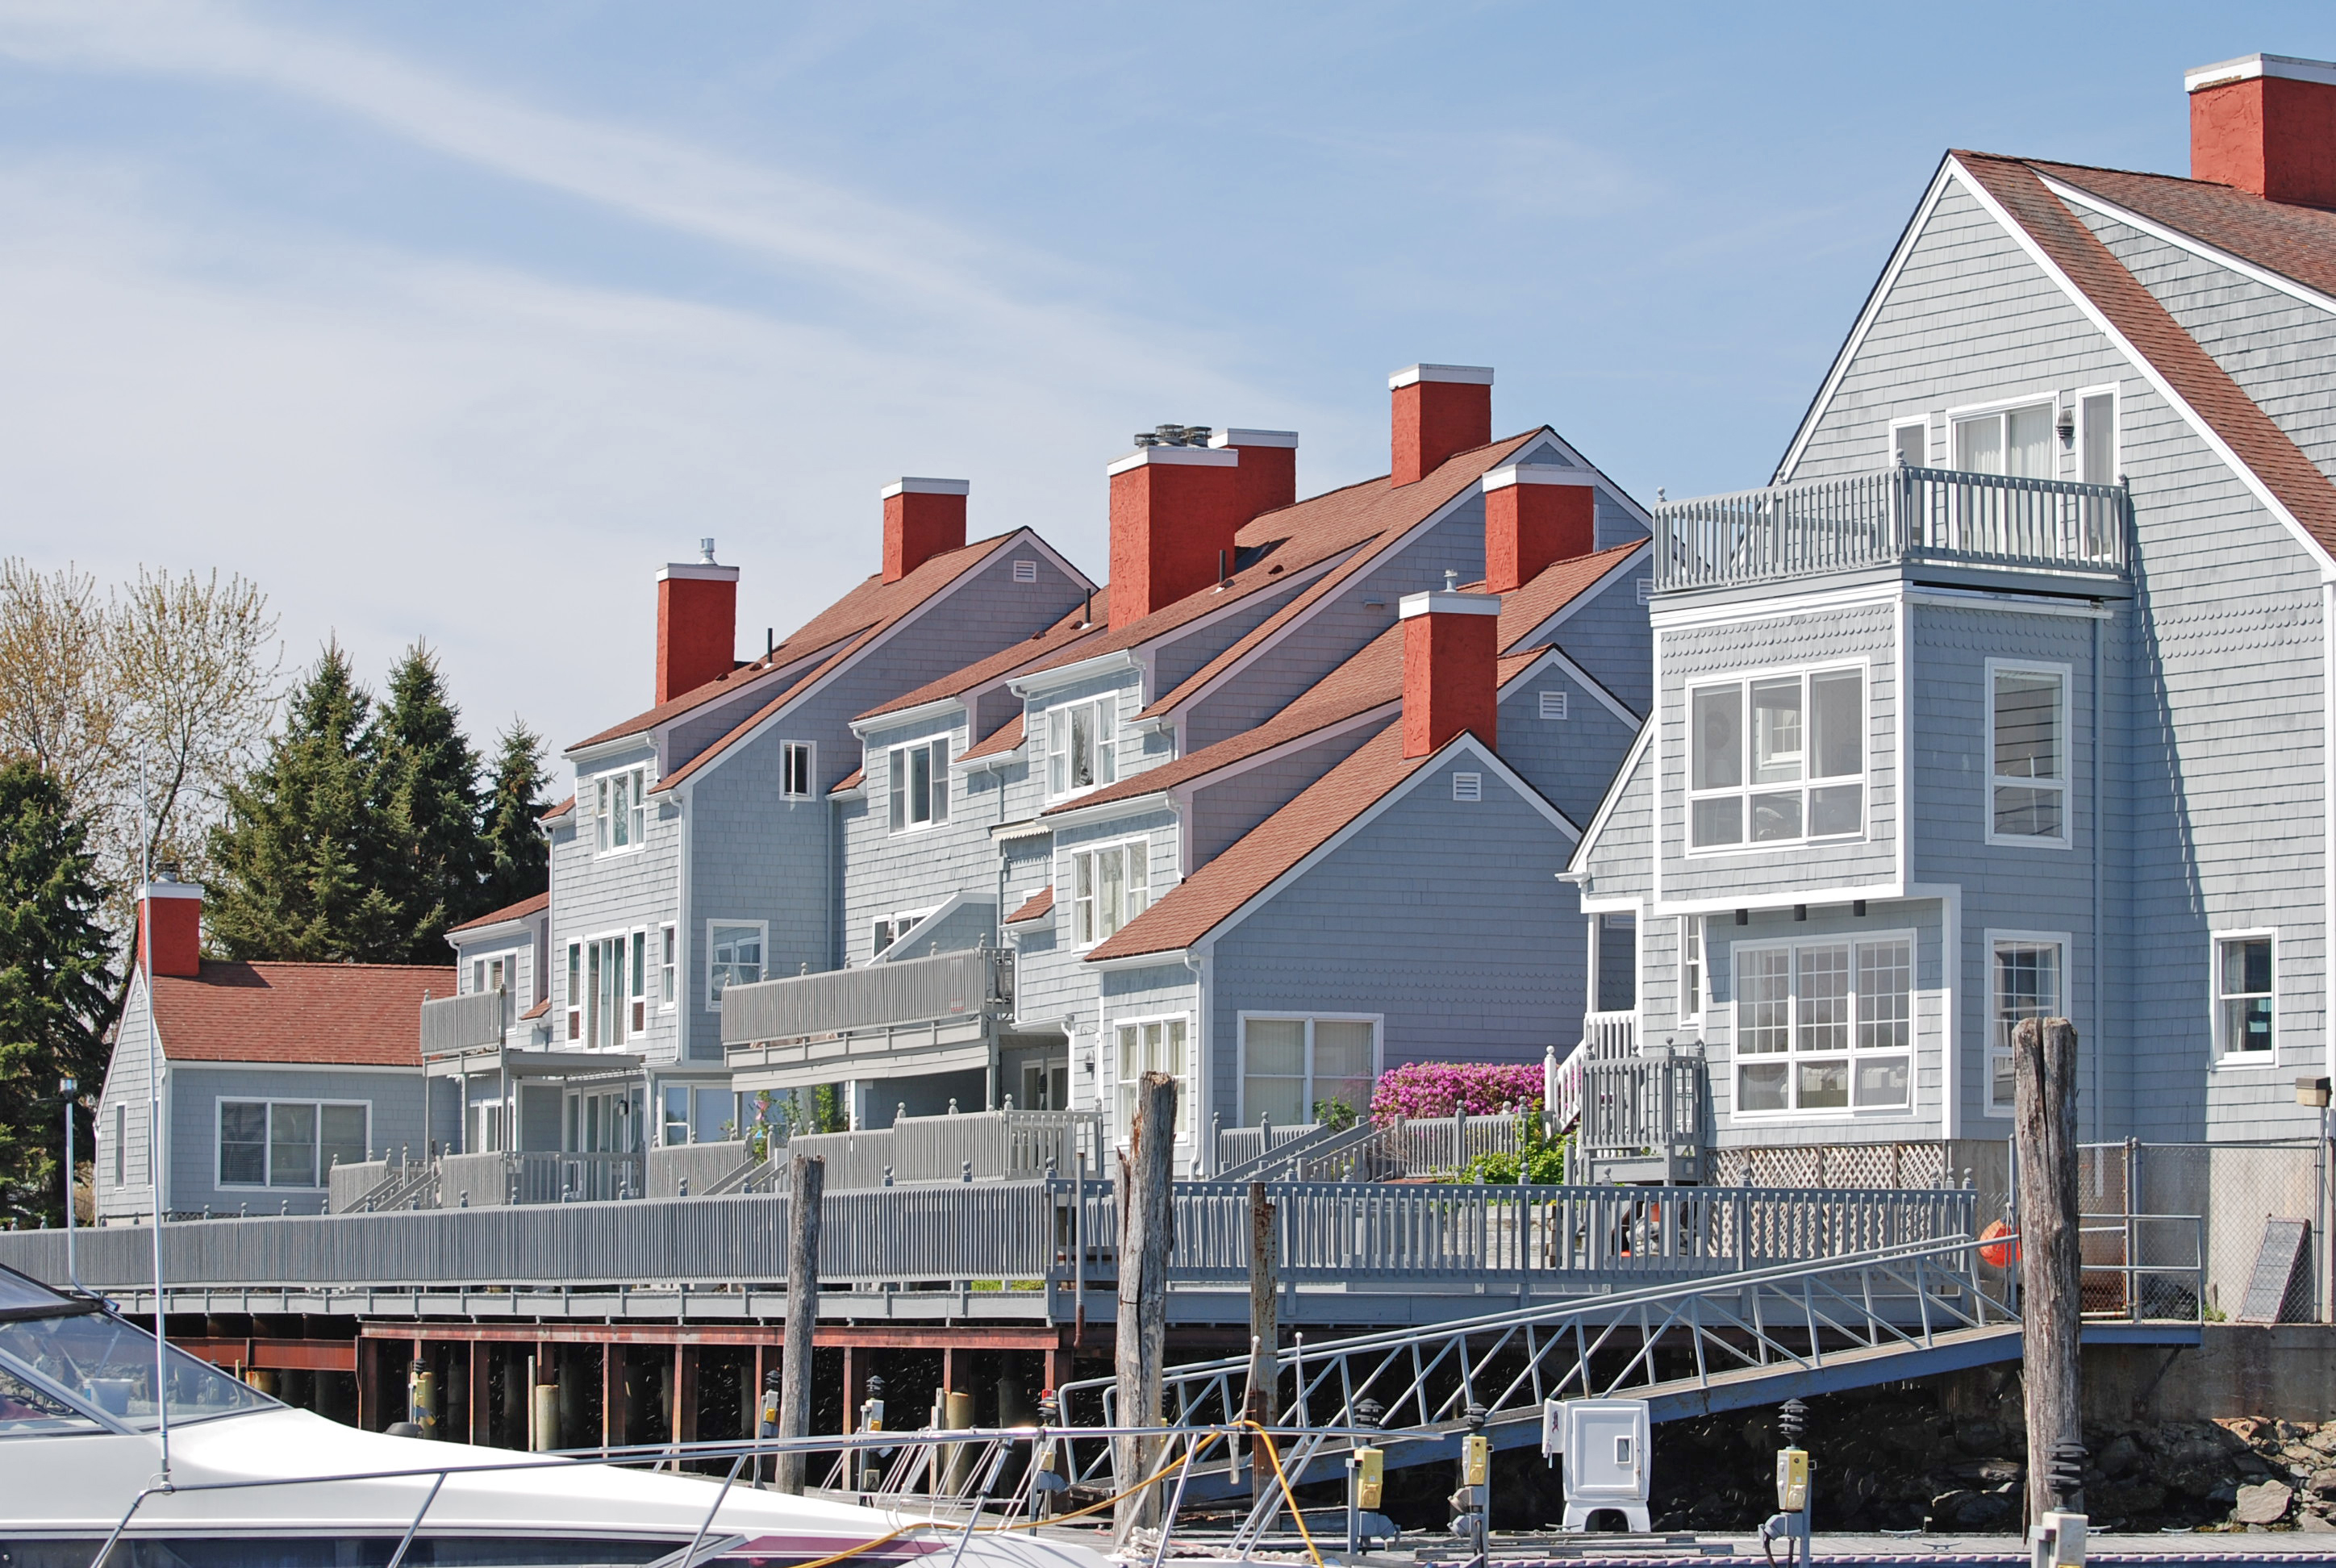 Sales of Vacation Homes Up in 2015